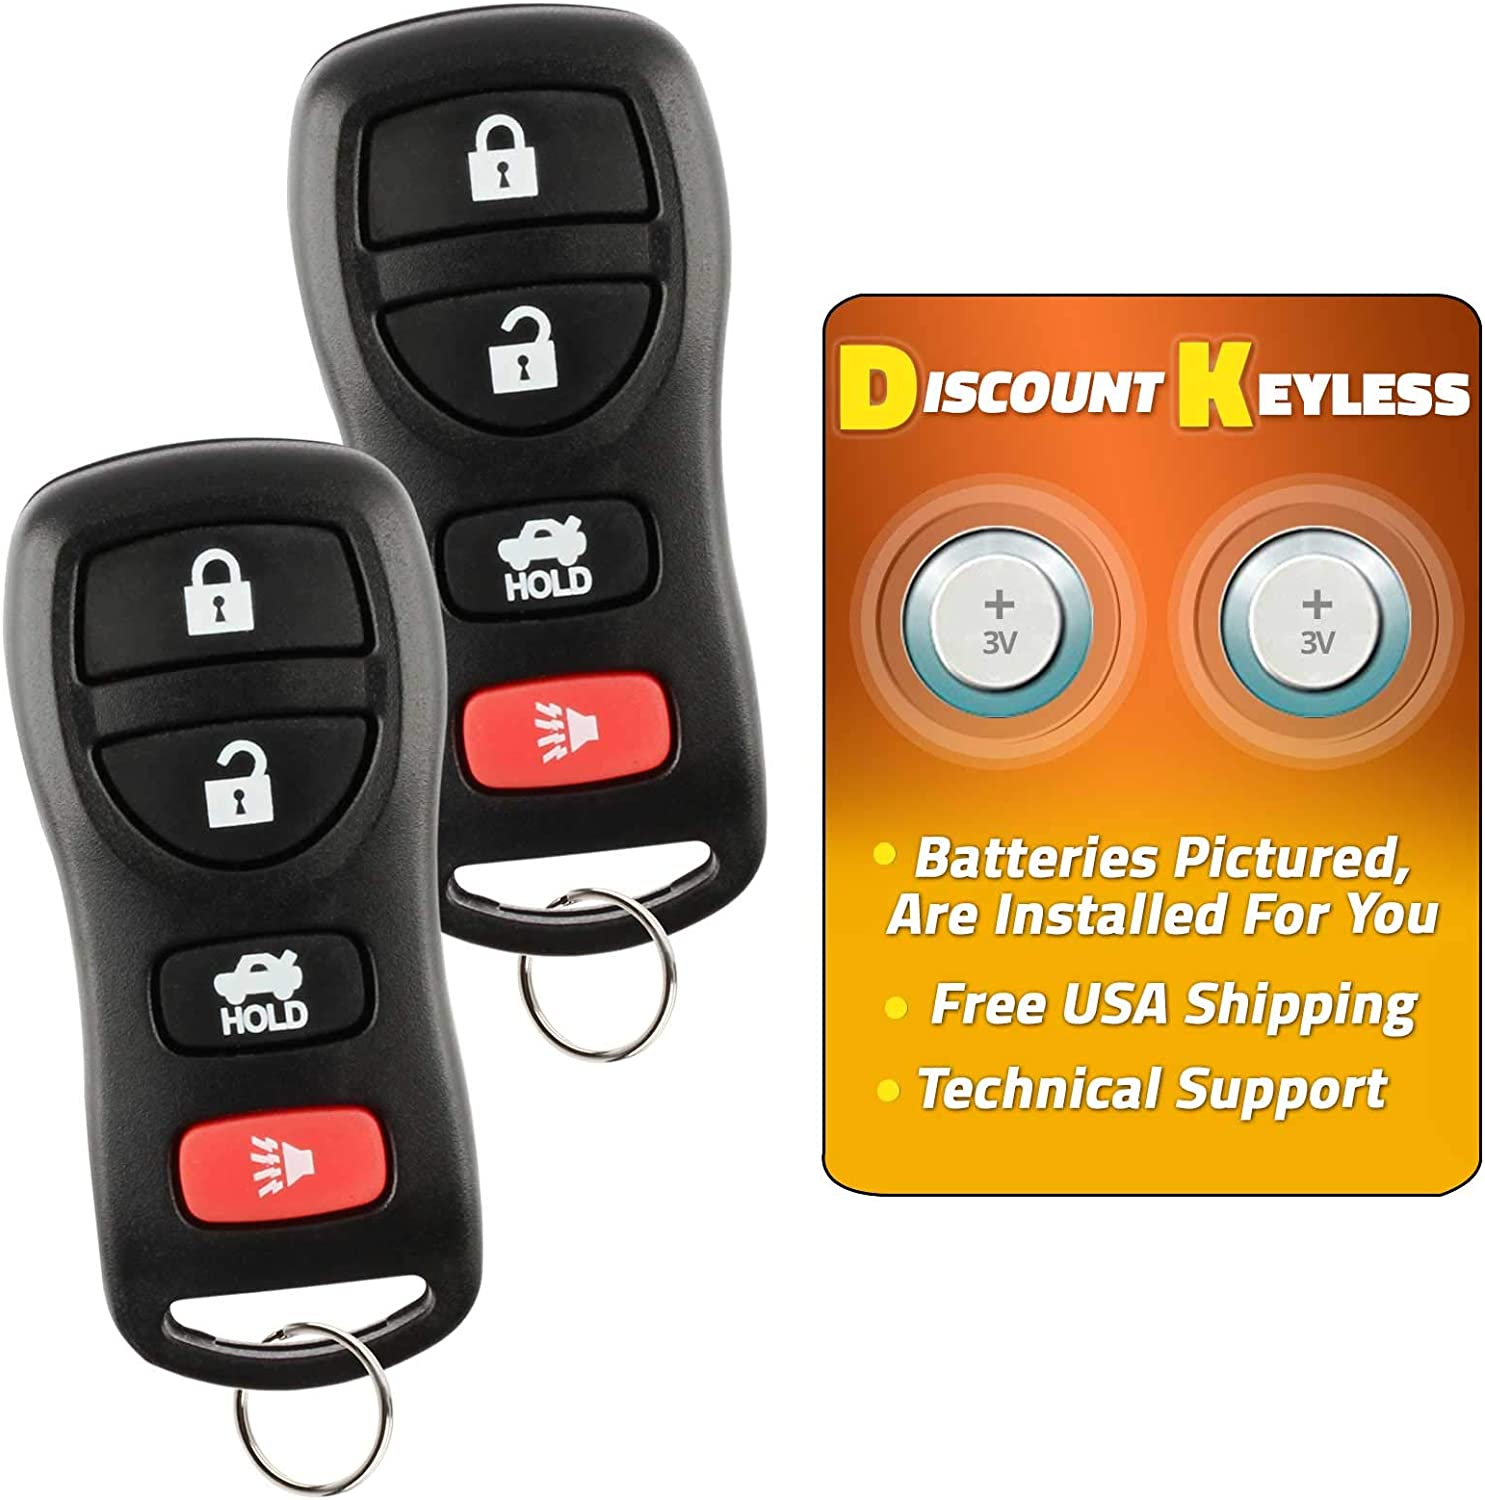 Pack of 2 ECCPP Replacement fit for Keyless Entry Remote Control Car Key Fob fits for Infiniti EX35 Infiniti FX35 Nissan Armada Nissan Maxima Nissan Murano KBRASTU15